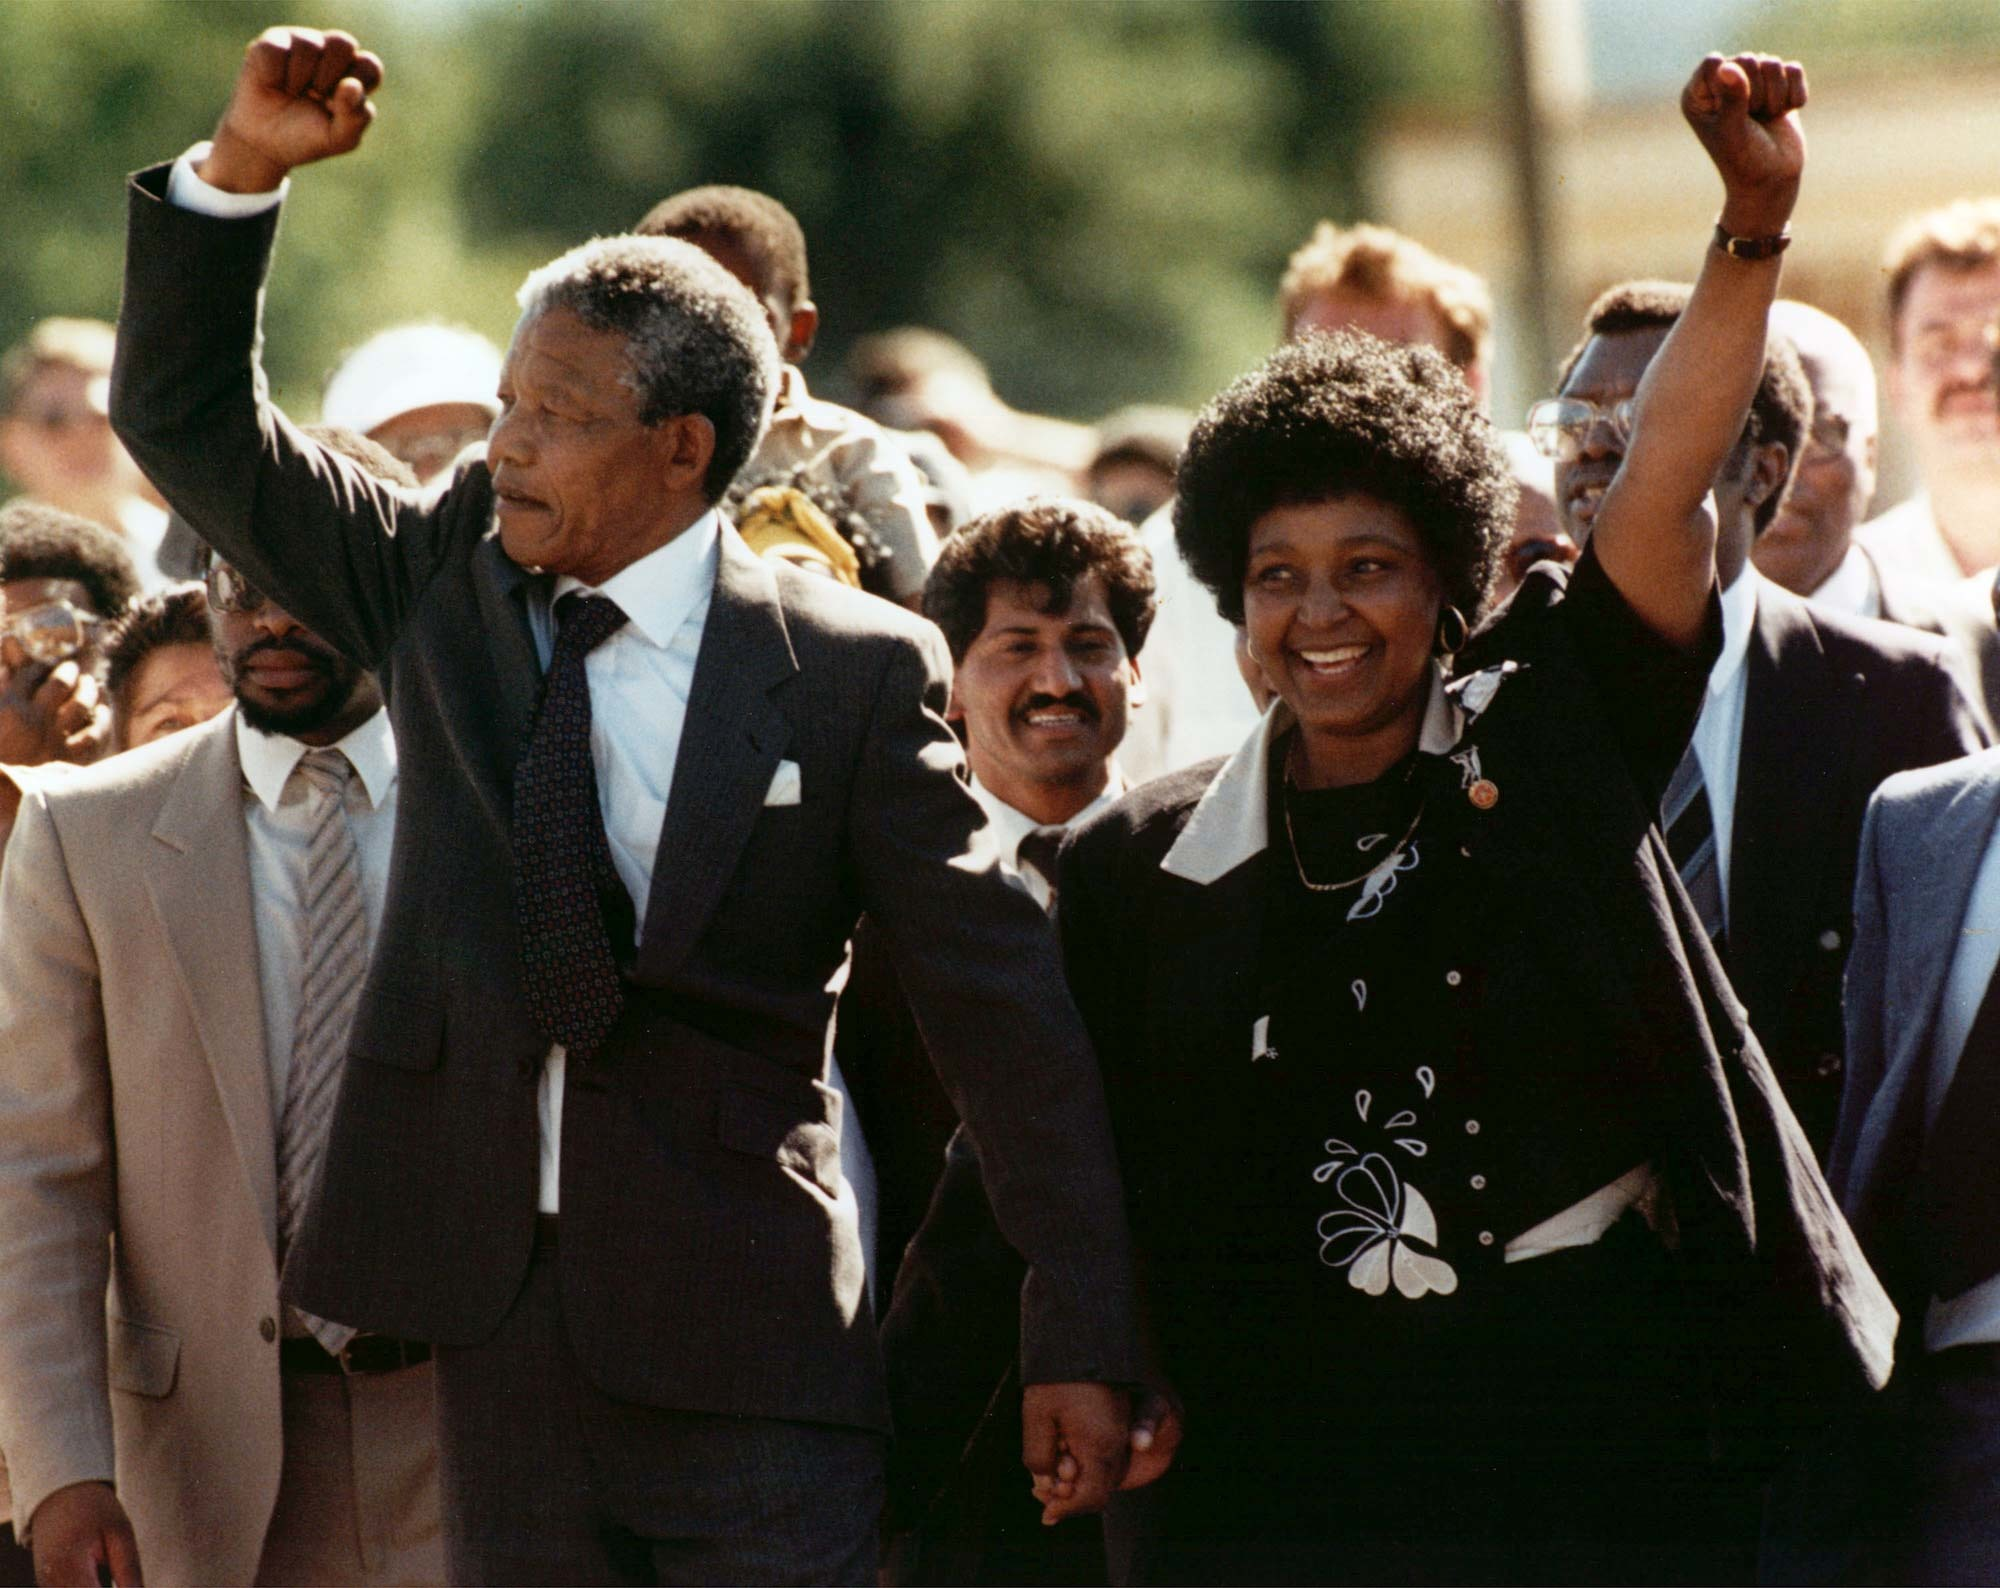 Winnie Mandela, walking hand in hand with her late husband Nelson upon his release from Victor Verster Prison, in Paari, South Africa 1990.